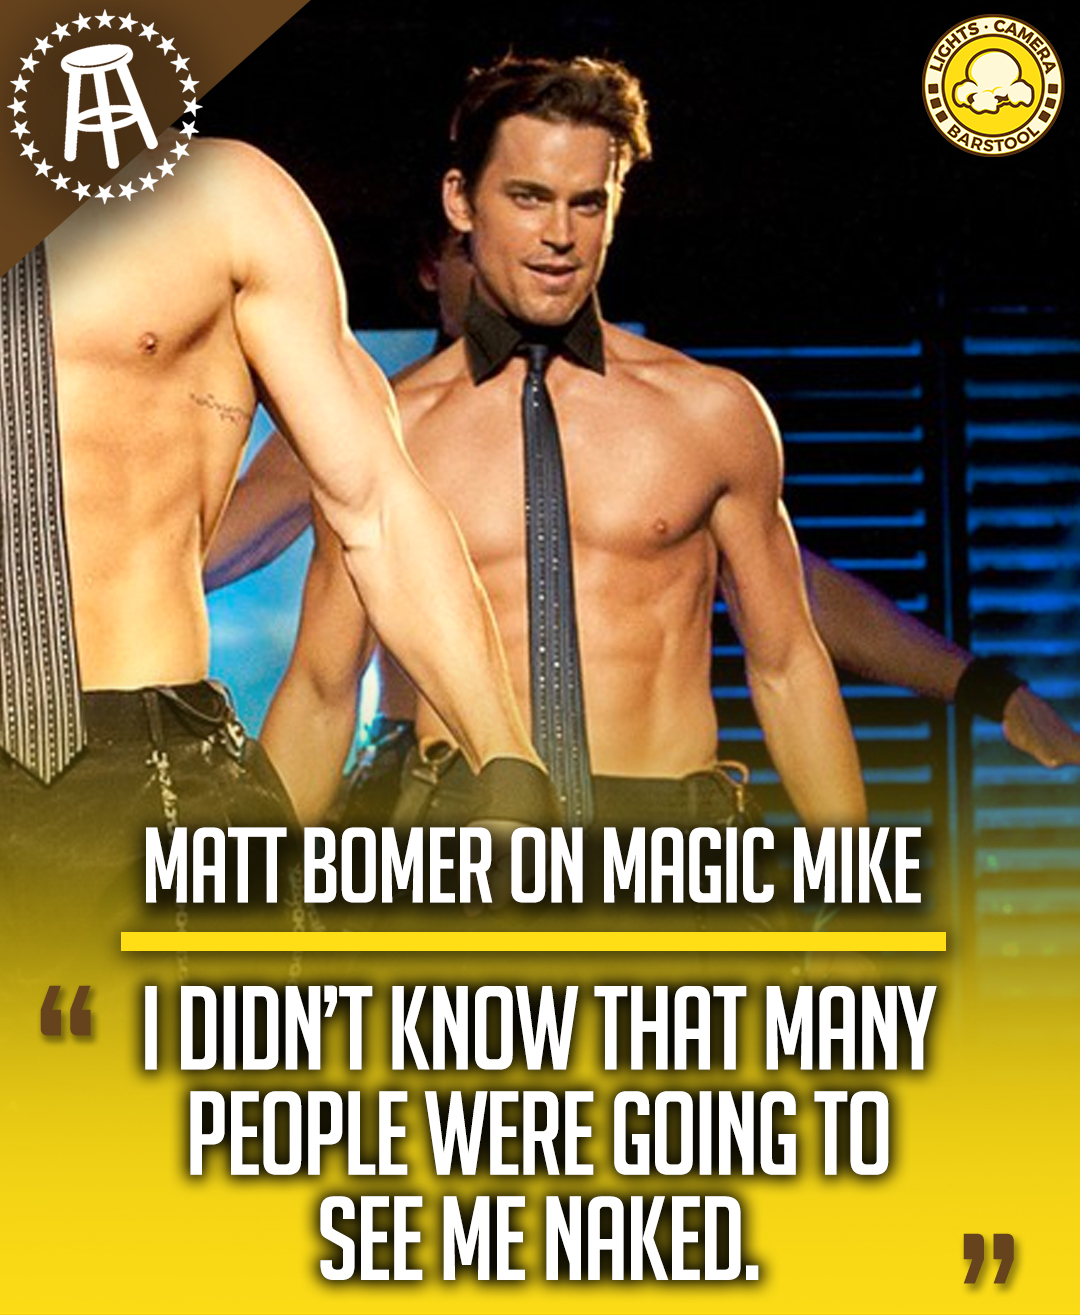 Magic Mike Streaming Vf : magic, streaming, Lights,, Camera,, Twitter:, Success, 'Magic, Mike', Great,, Making, Movie,, @MattBomer, Didn't, Realize, People, Actually, Going, It..., Interview:, Https://t.co/DpjuUp7a2E…